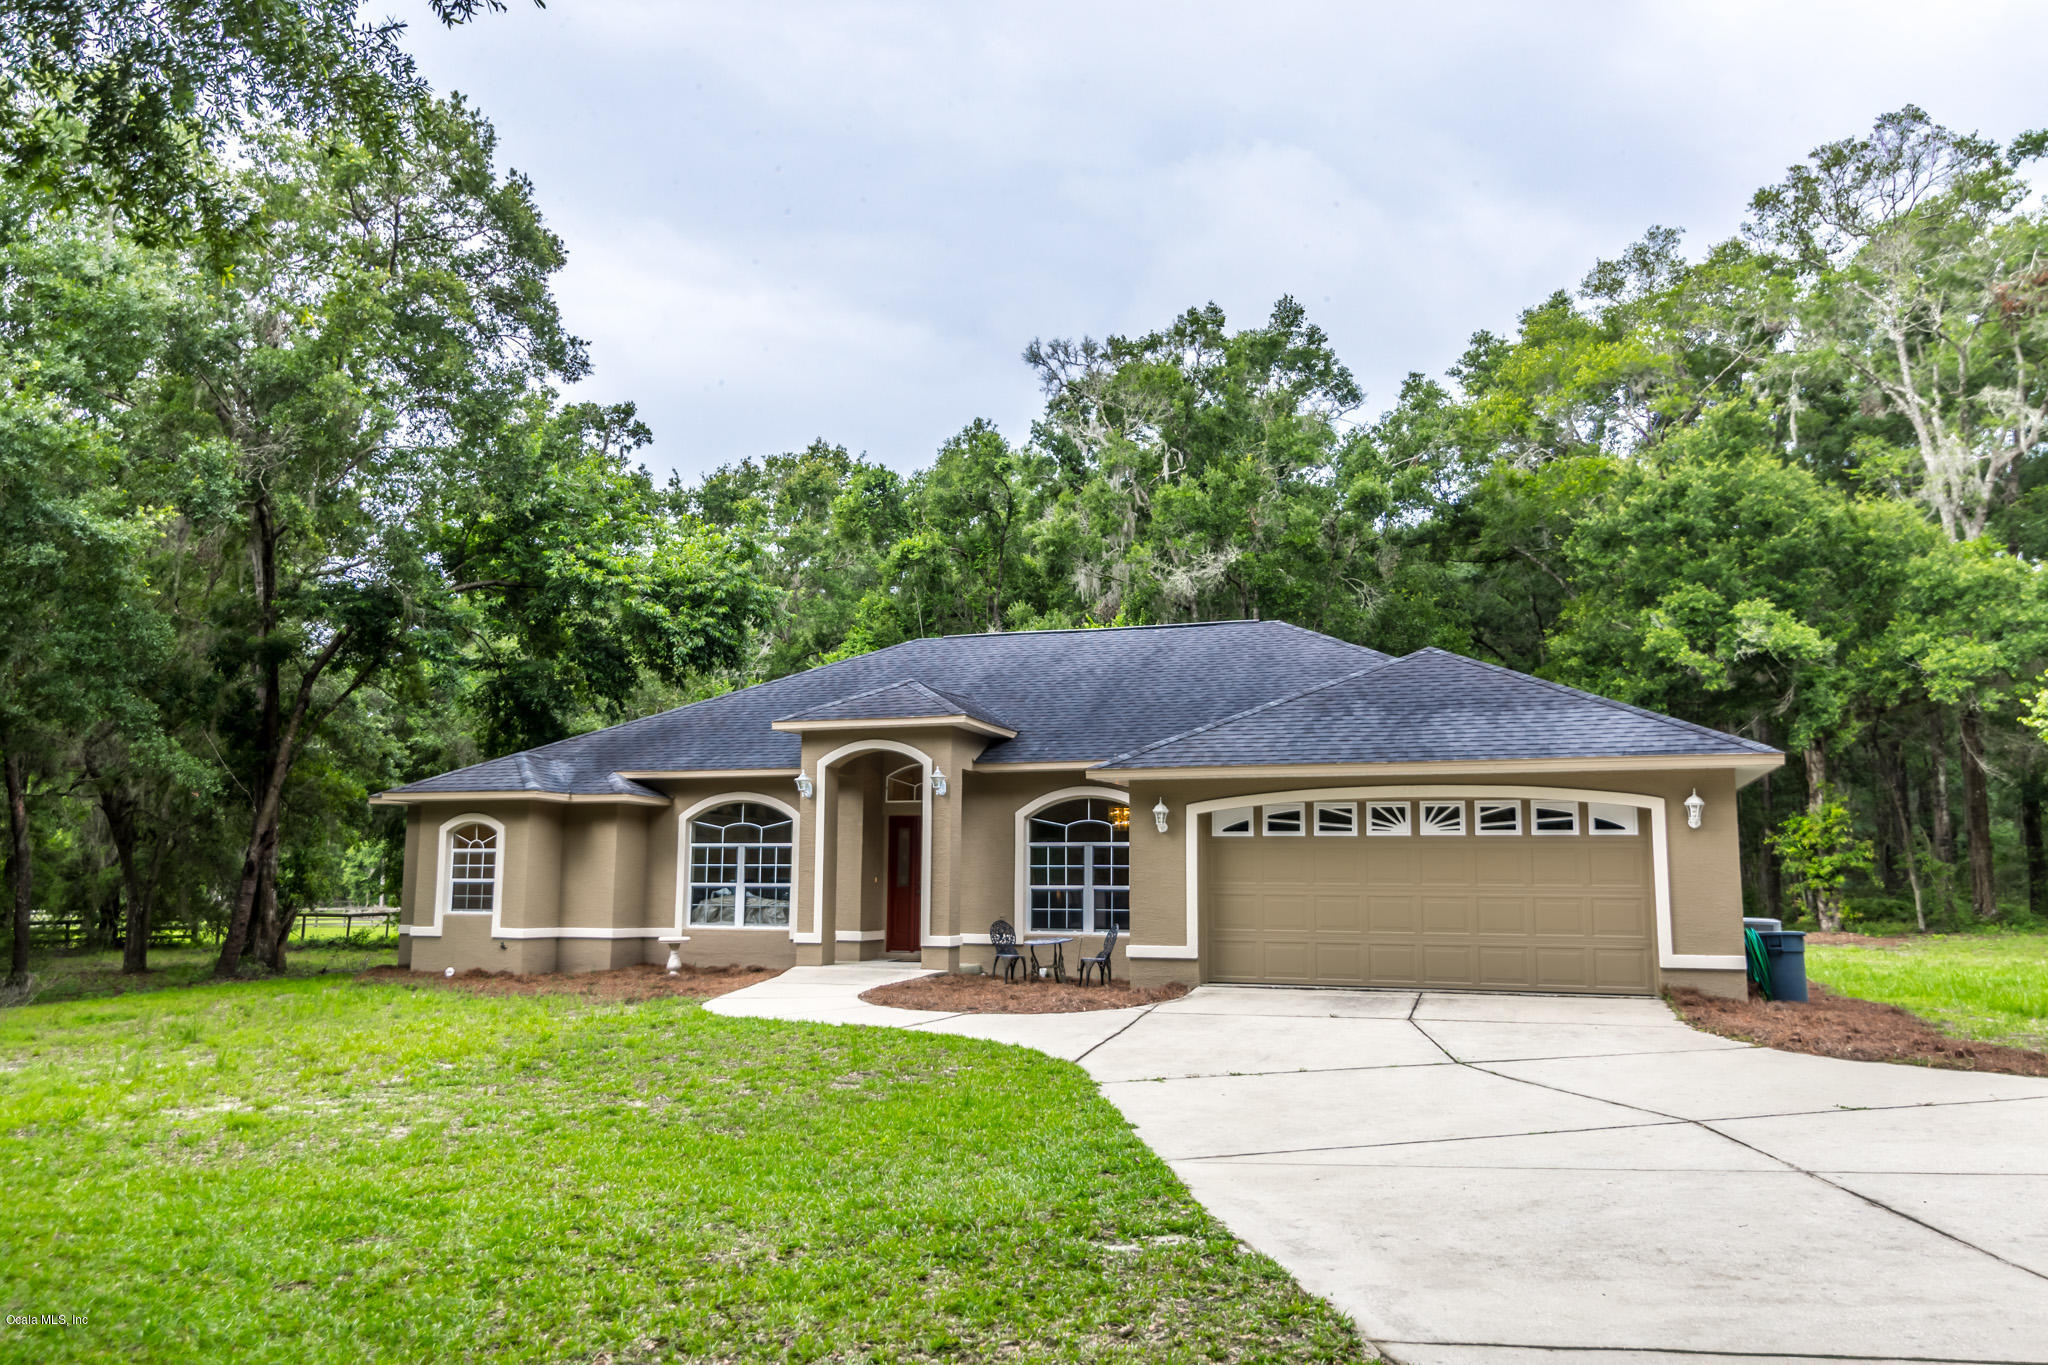 12650 SE 5TH AVENUE, OCALA, FL 34480